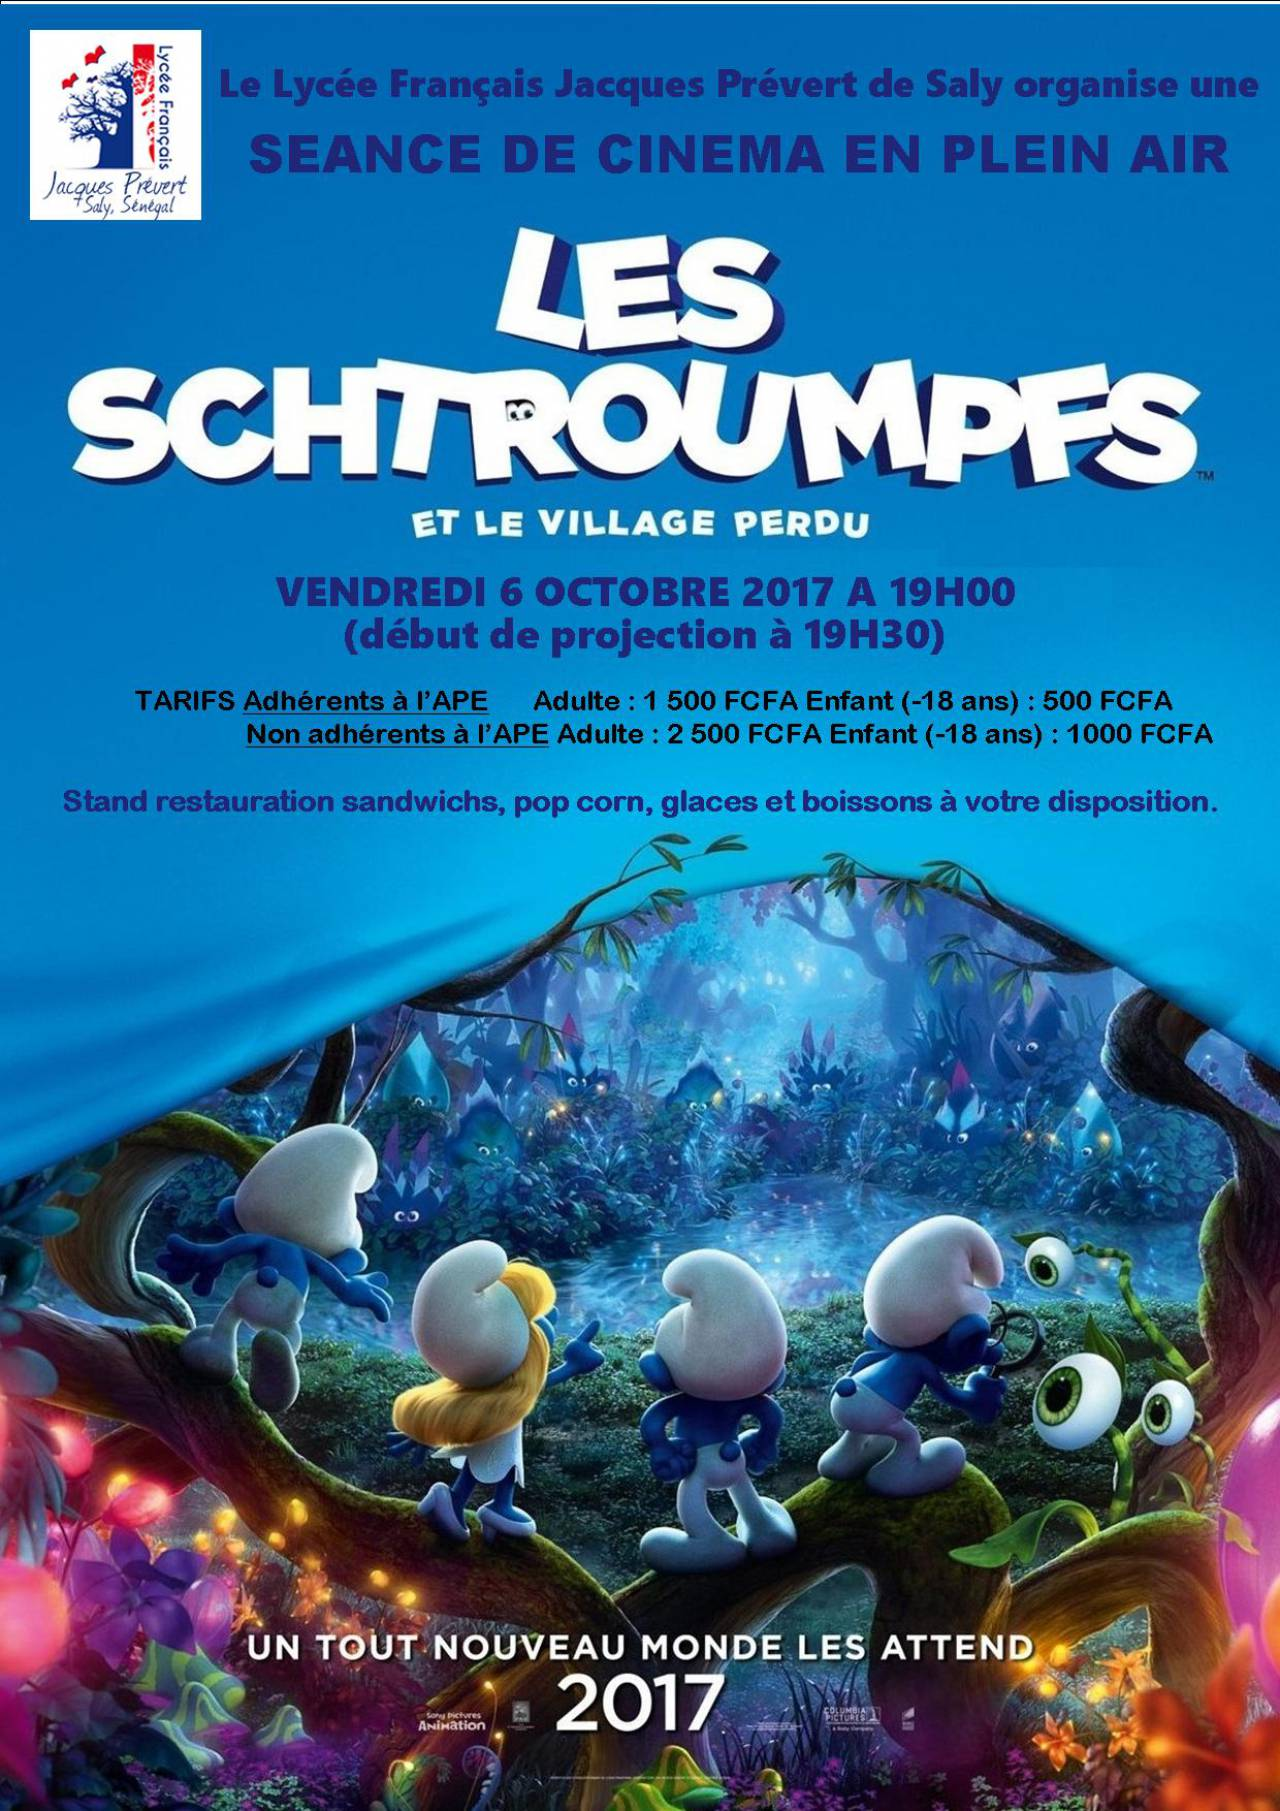 articles/June2019/affiche_village_schtroumpfs1.jpg